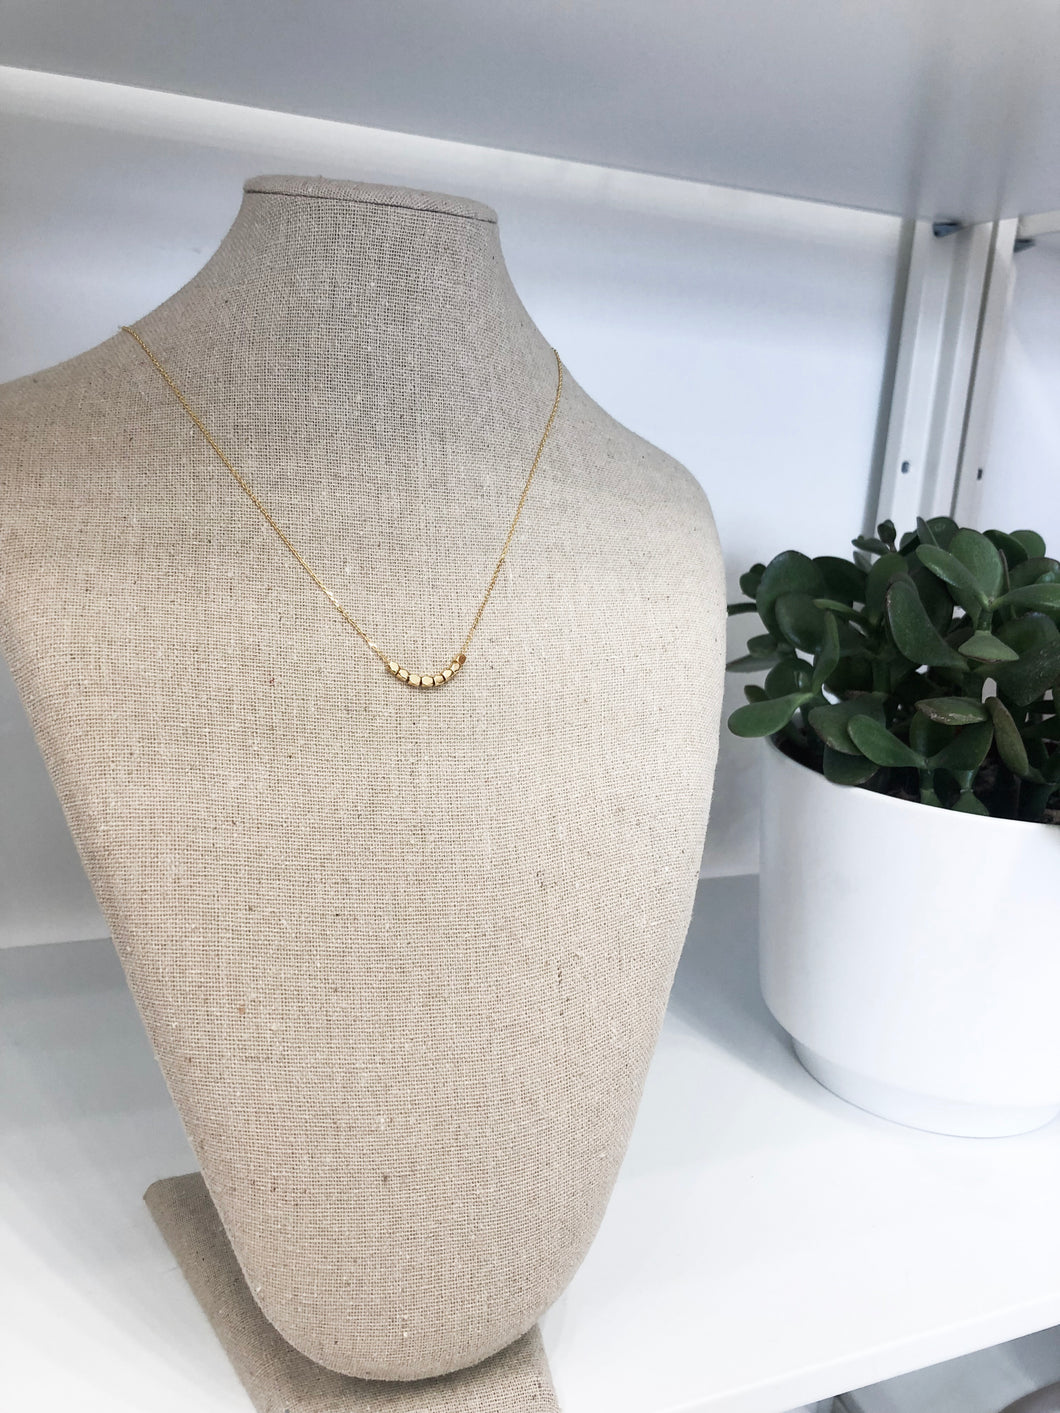 Eight Little Beads Necklace in Gold